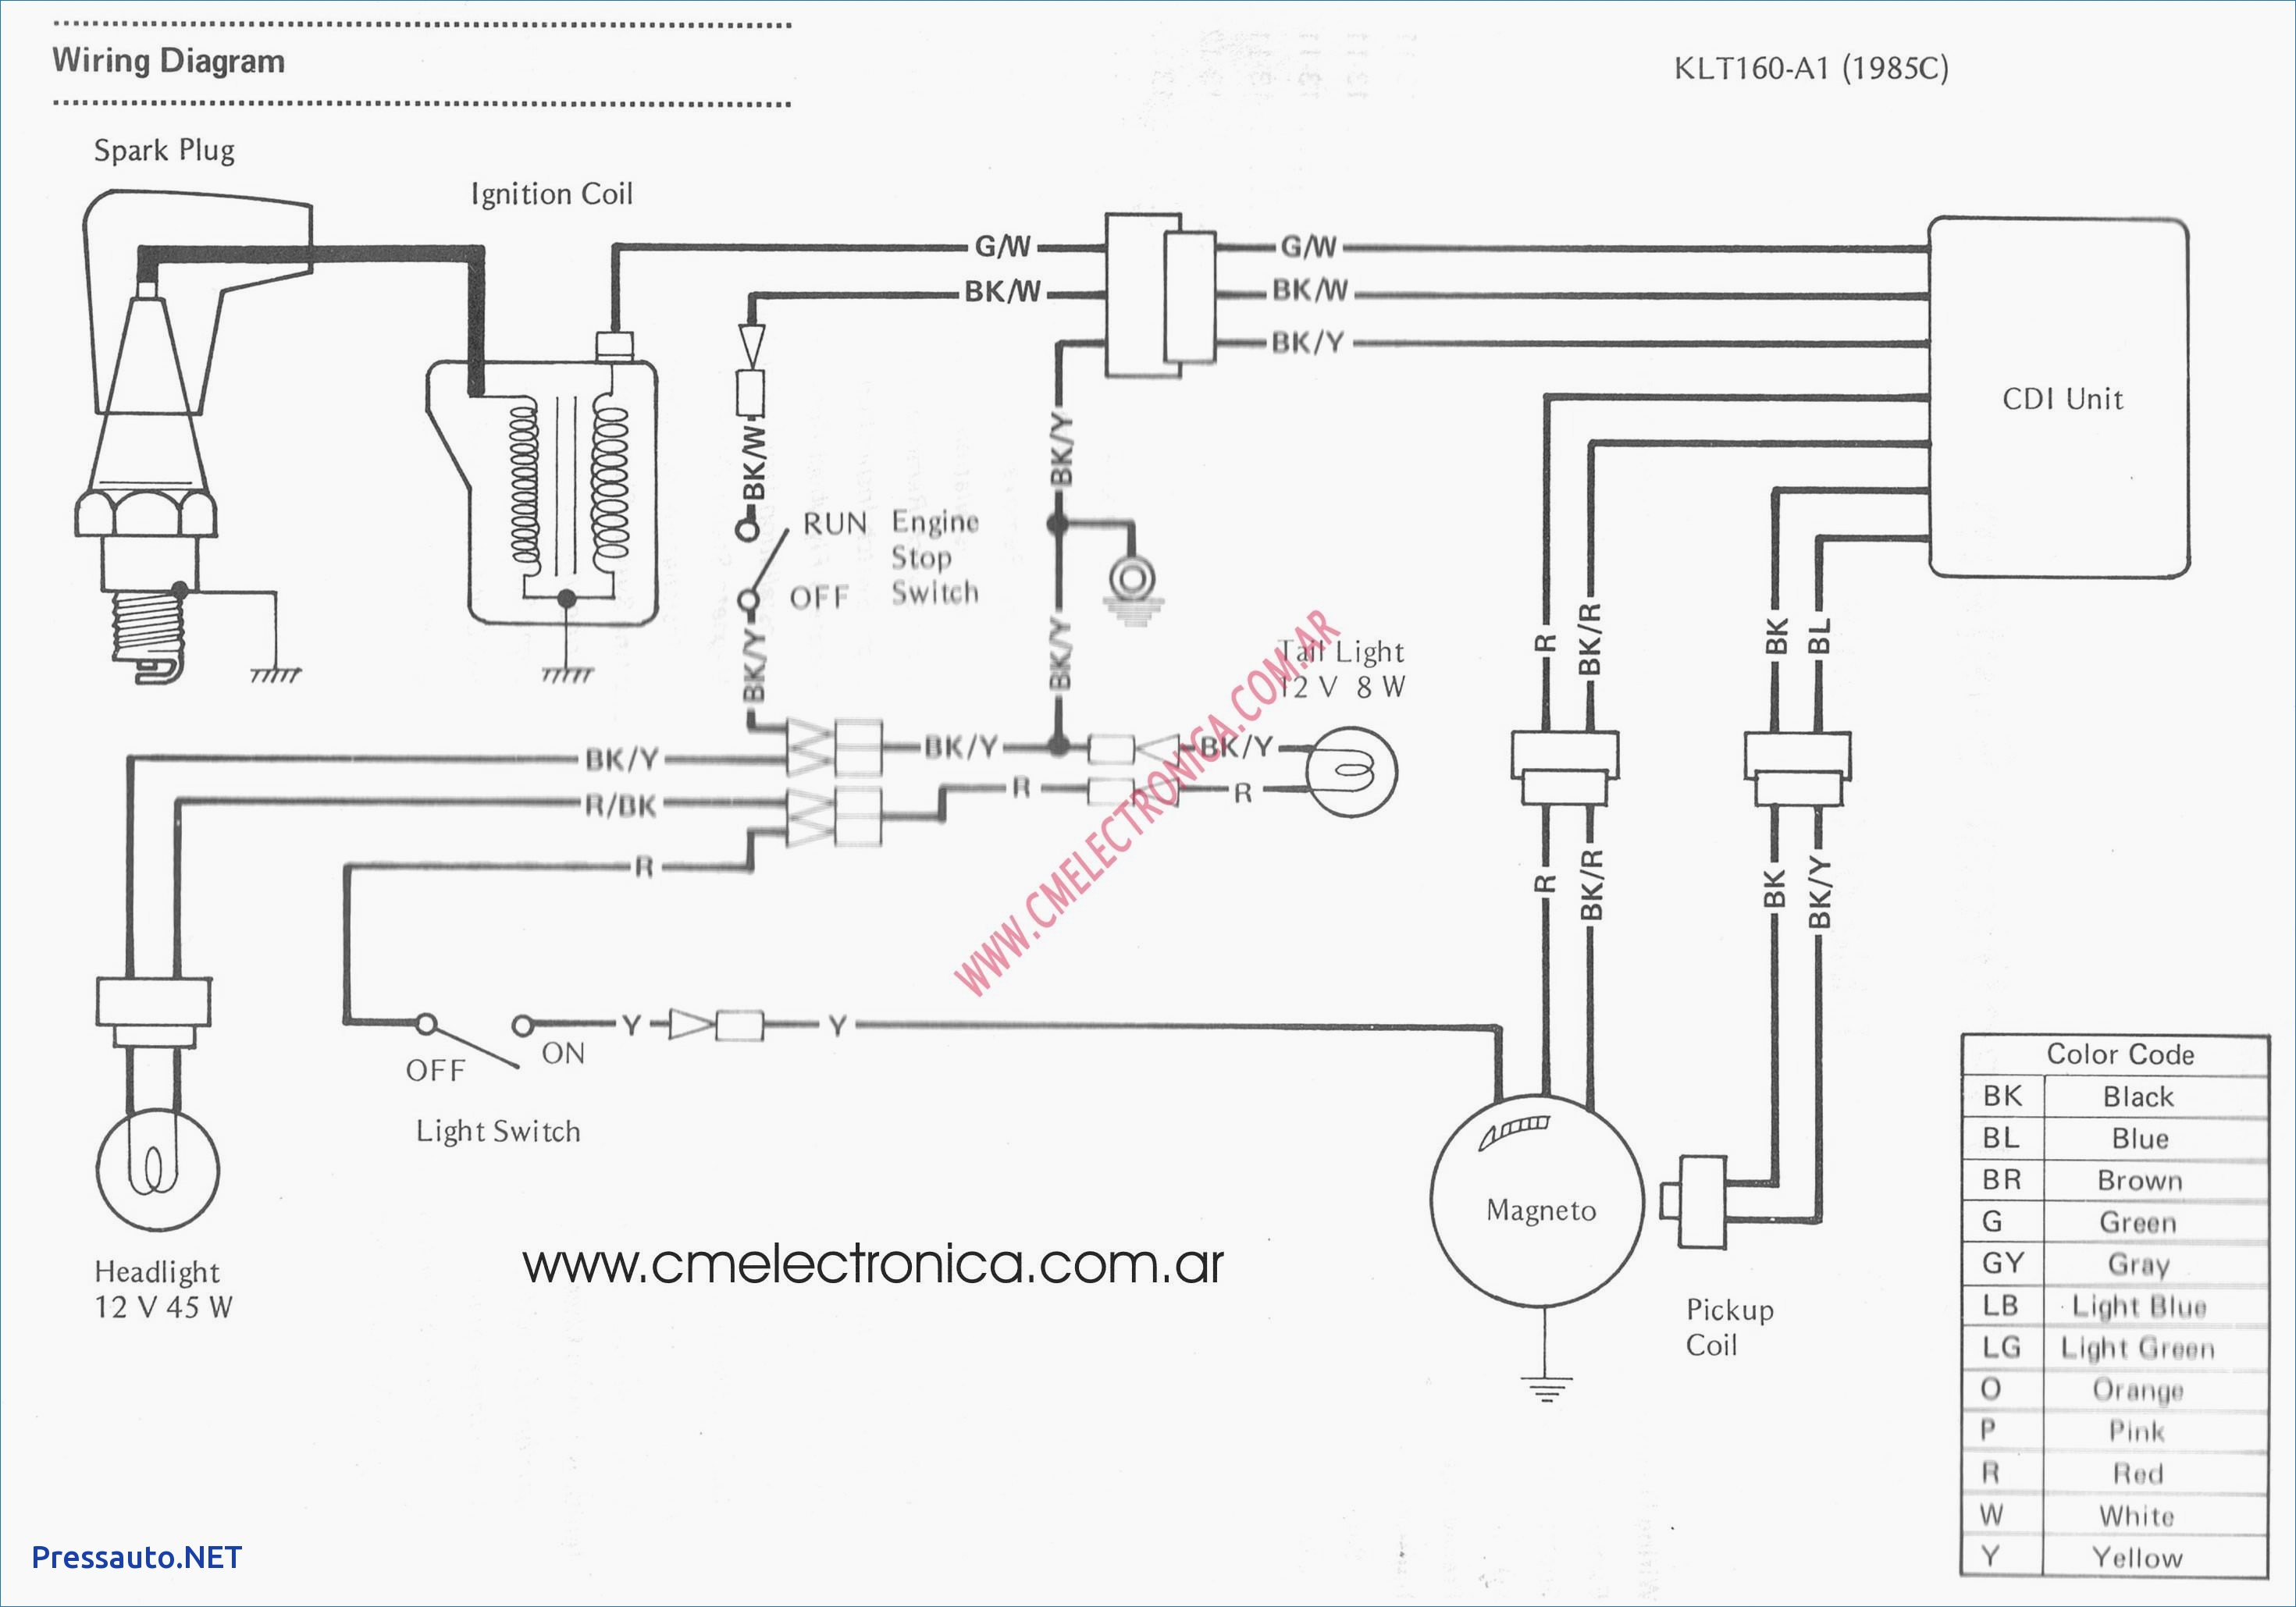 massey ferguson 135 wiring diagram elegant case 444 wiring diagram wiring diagram of massey ferguson 135 wiring diagram 1845c wiring diagram wiring diagram data